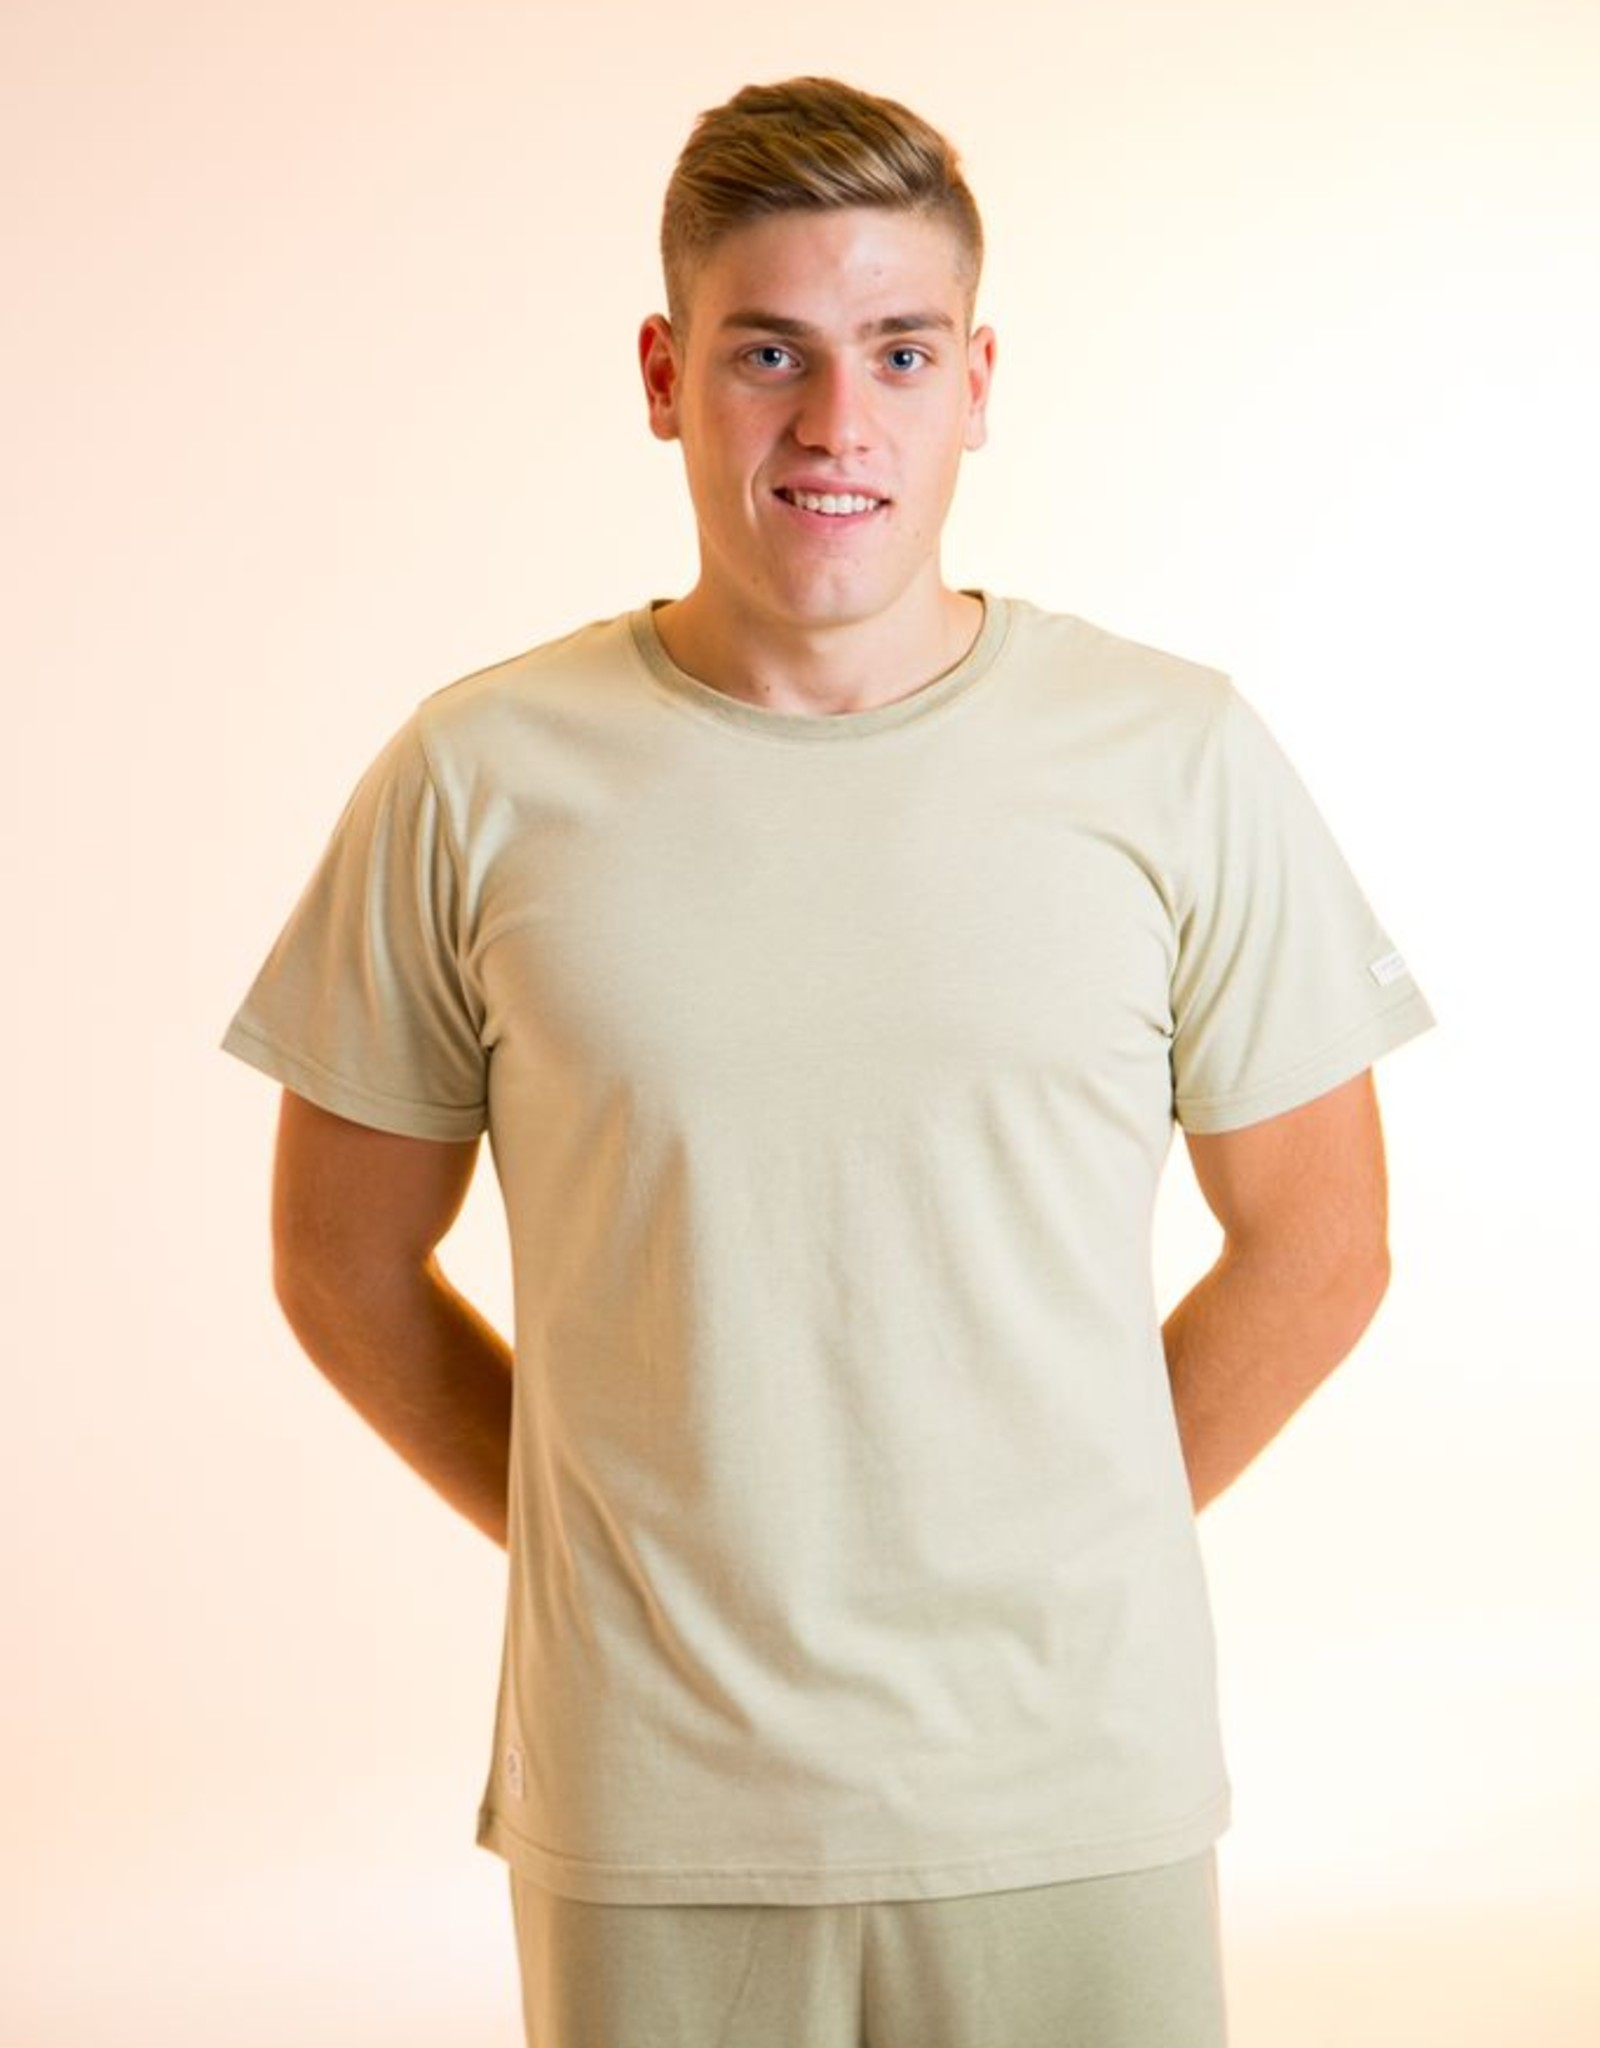 shirt with short sleeves for men.